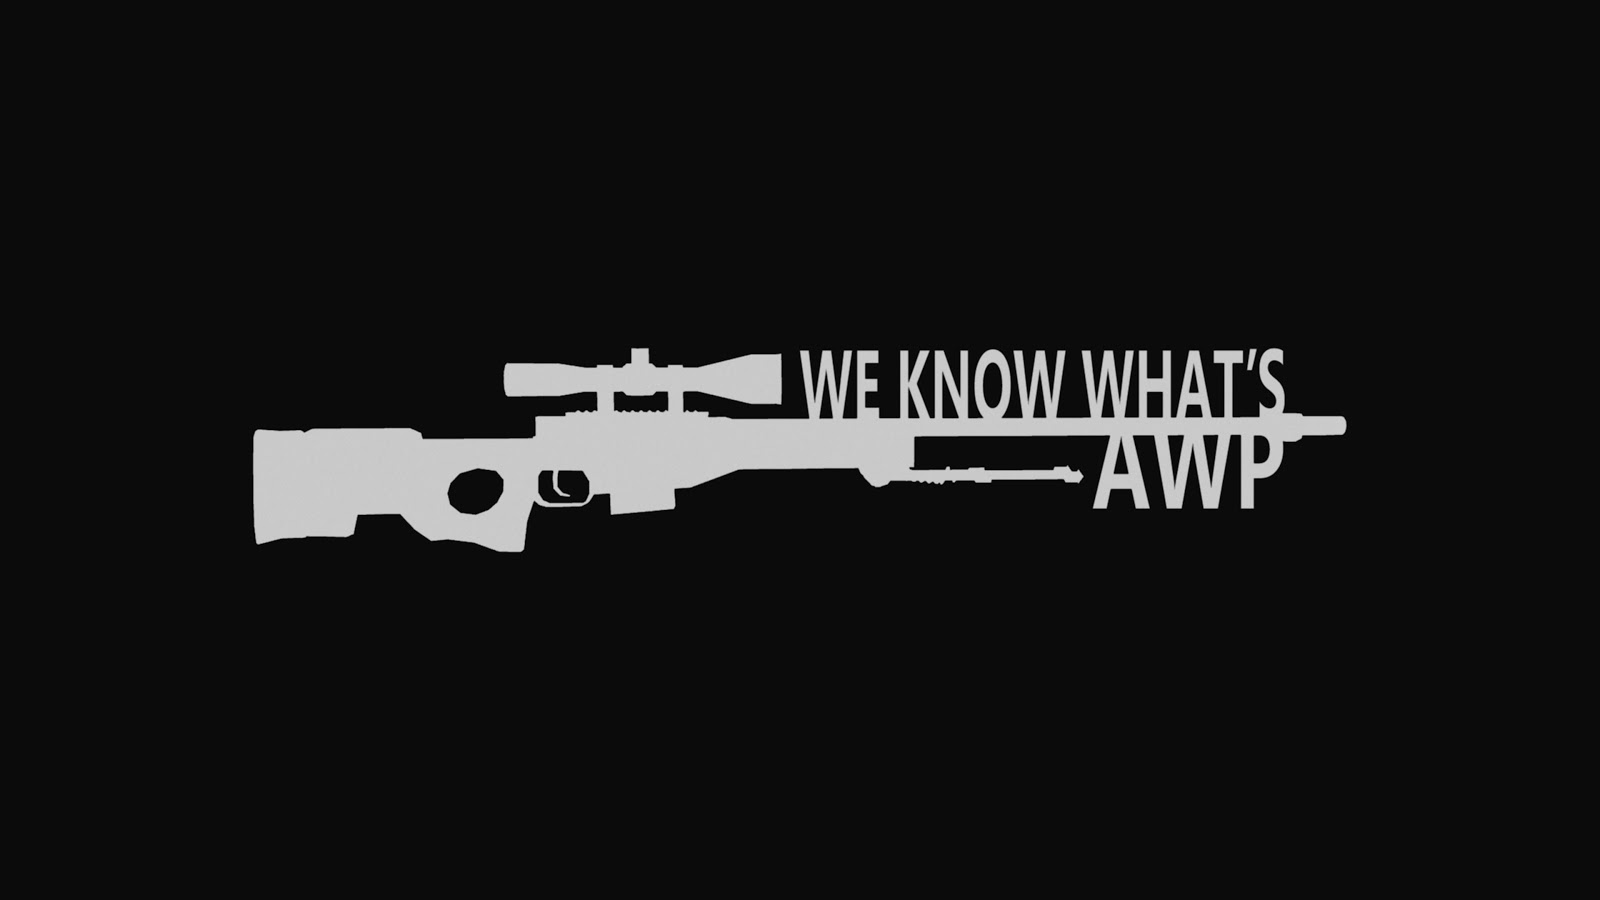 we_know_what's_awp